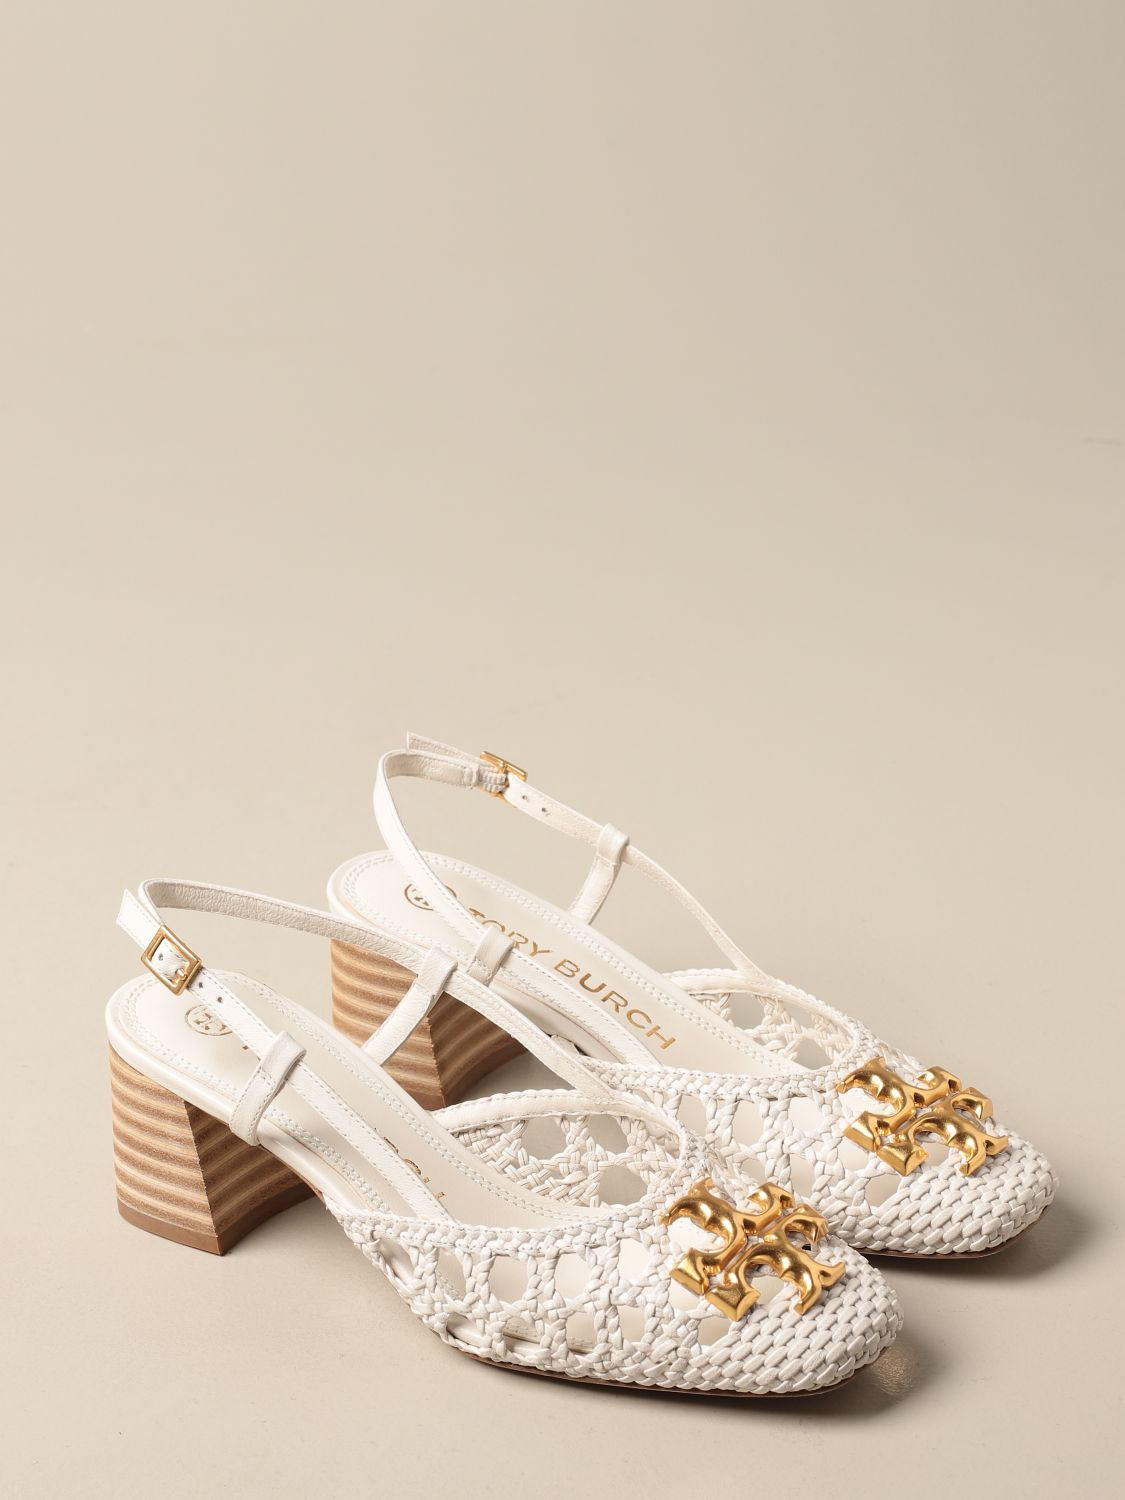 Pumps Tory Burch: Tory Burch slingback in woven leather with logo ivory 2